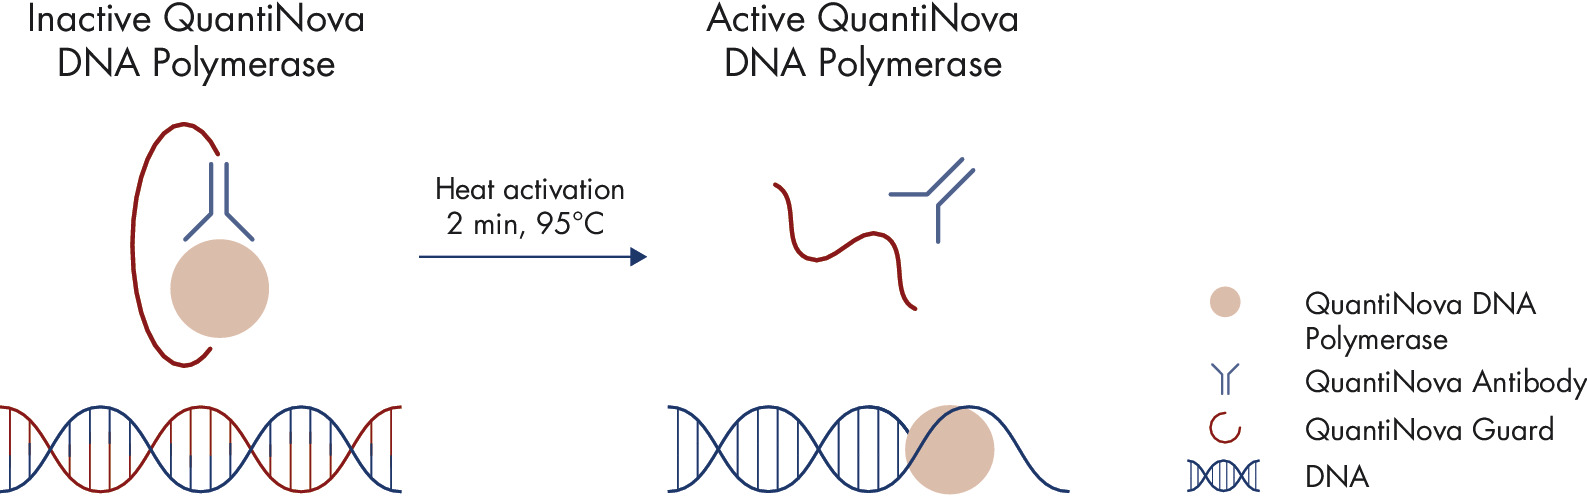 Principle of the novel QuantiNova hot-start mechanism.